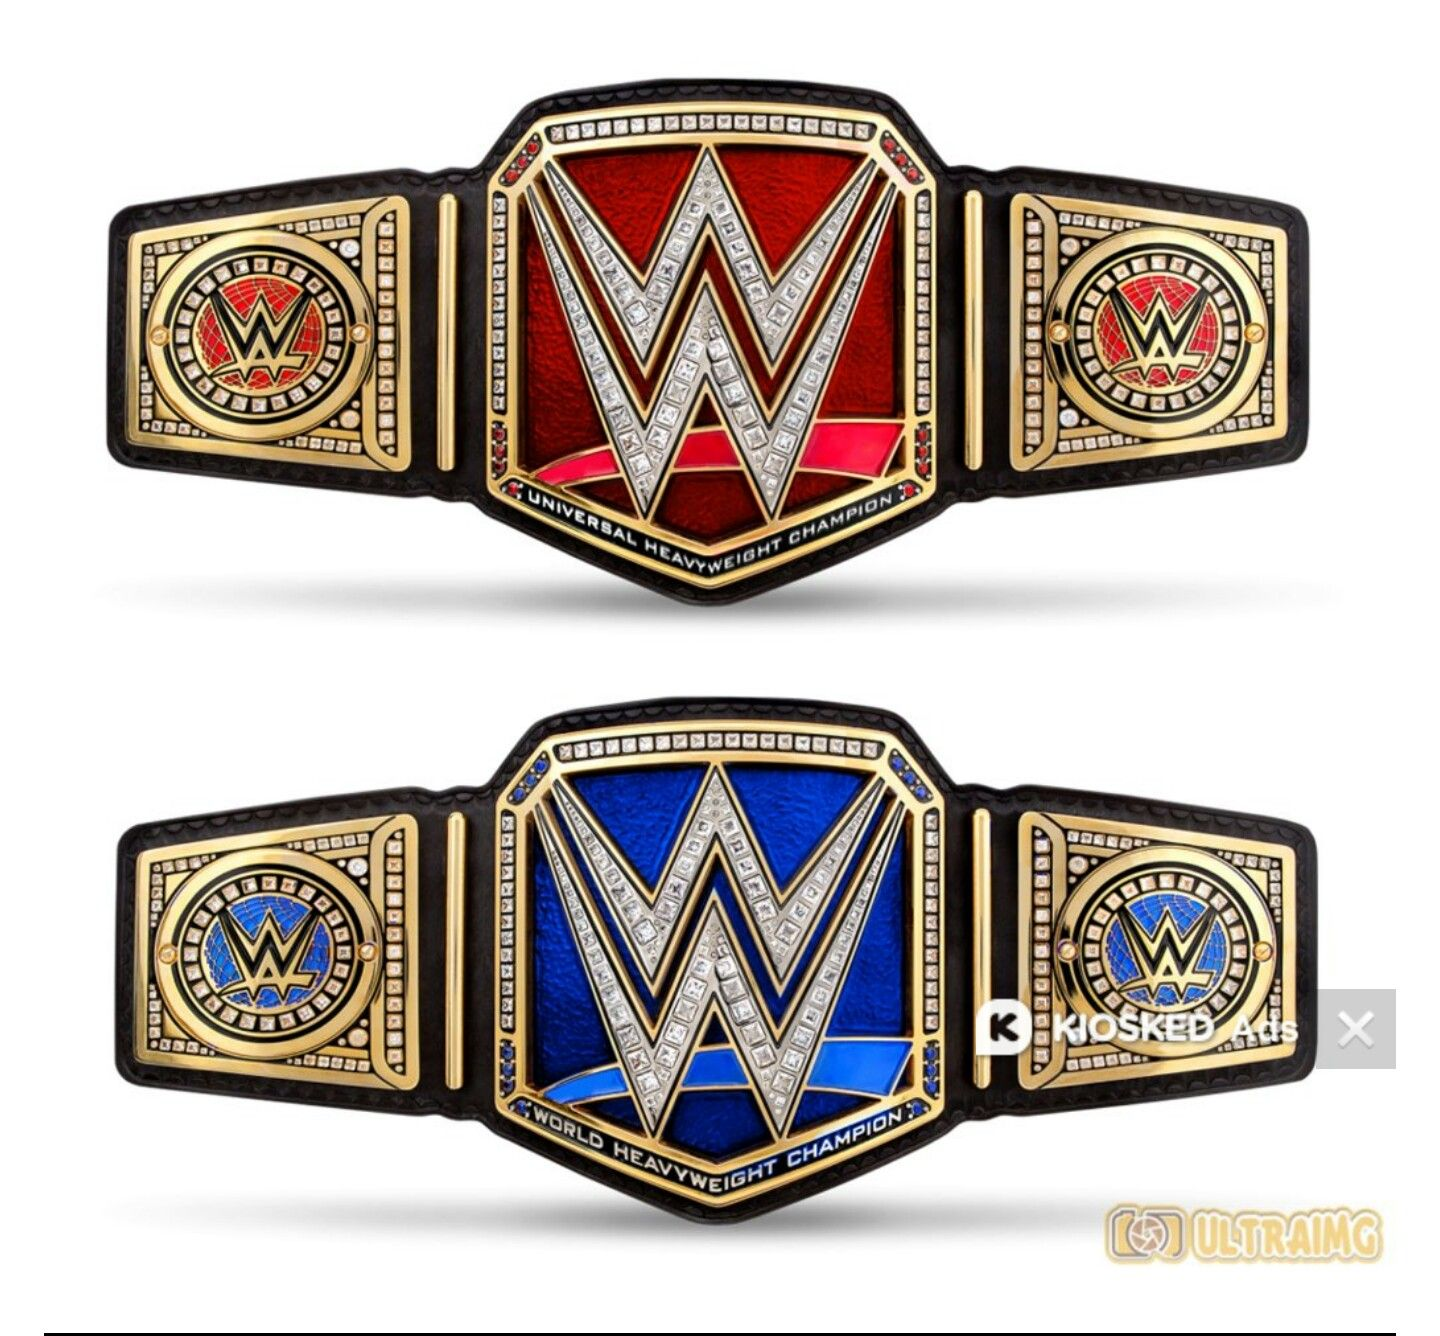 Pin By Alex S On 2 Boxing Mma Pro Wrestling Champions Thru Out The Lifetime Wwe Belts Wwe Championship Belts Wwe Women S Championship